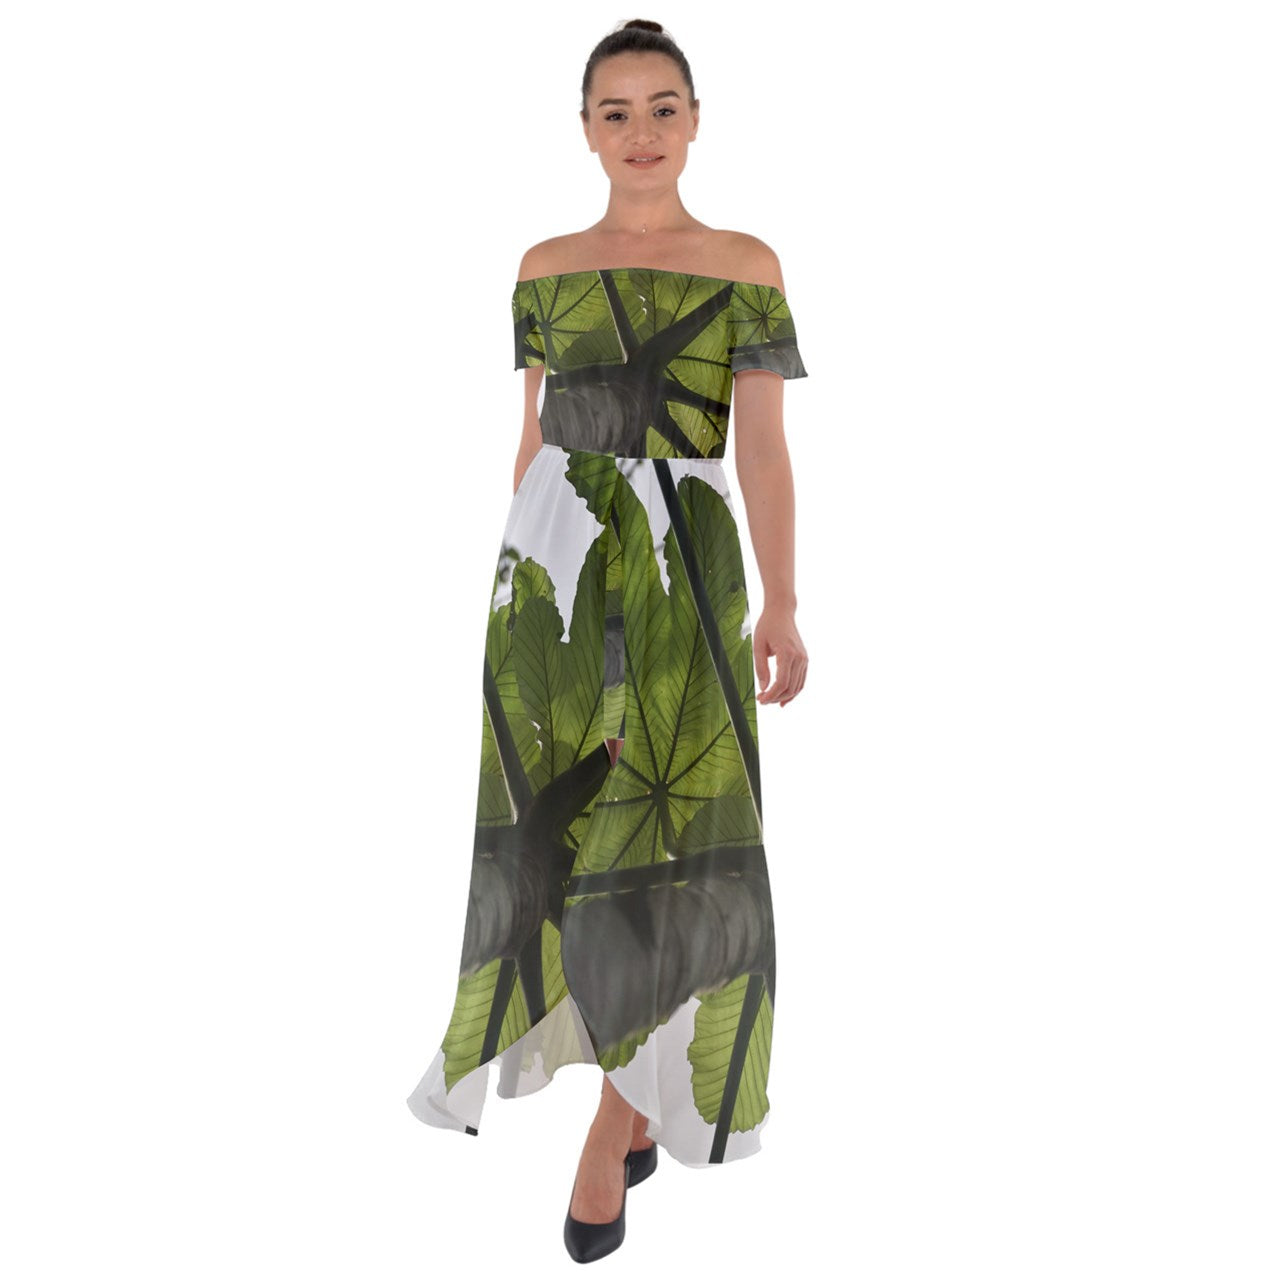 Off Shoulder Open Front Chiffon Dress - Awesome Yagrumo Tree - El Yunque rainforest